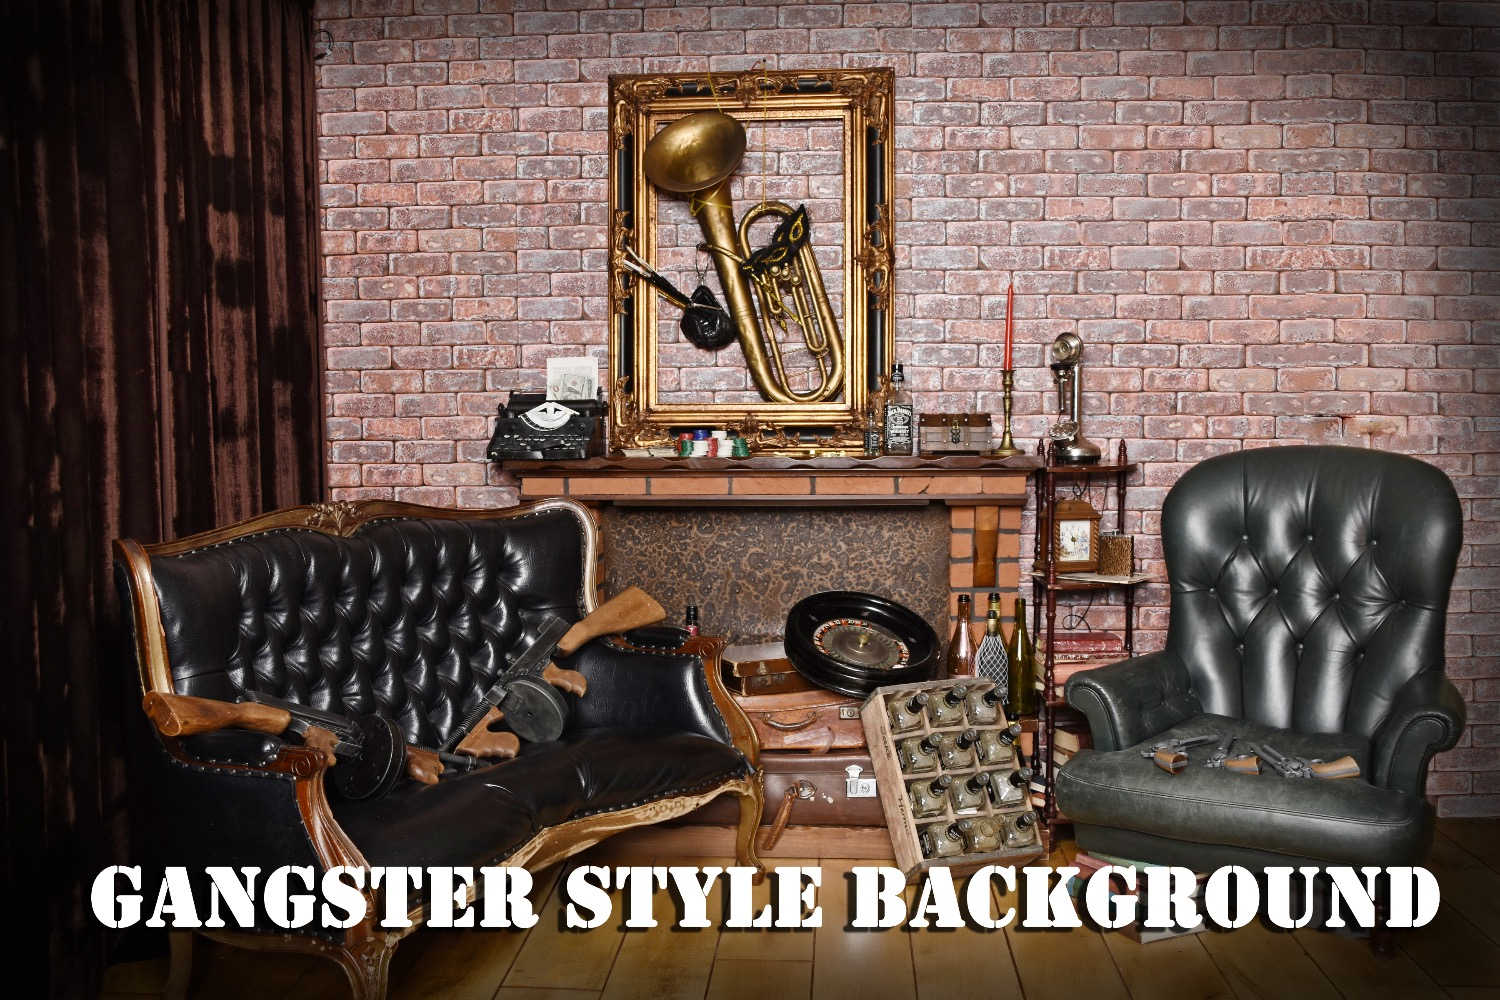 Gangster style background